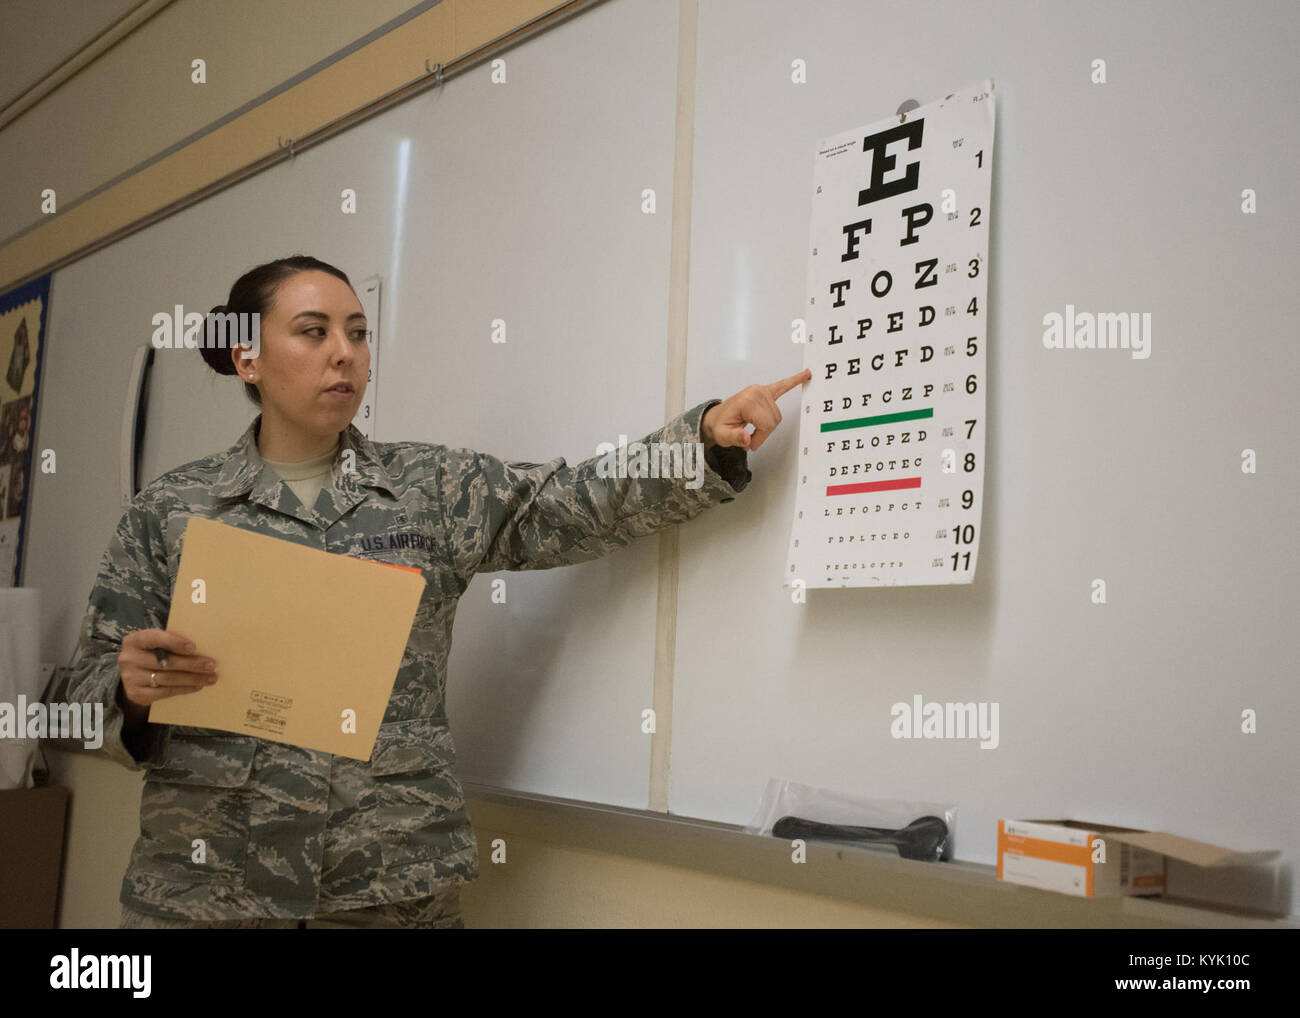 U.S. Air Force Airman 1st Class Danielle Fuhriman, aerospace medical technician from the 173rd Medical Group, Oregon Stock Photo